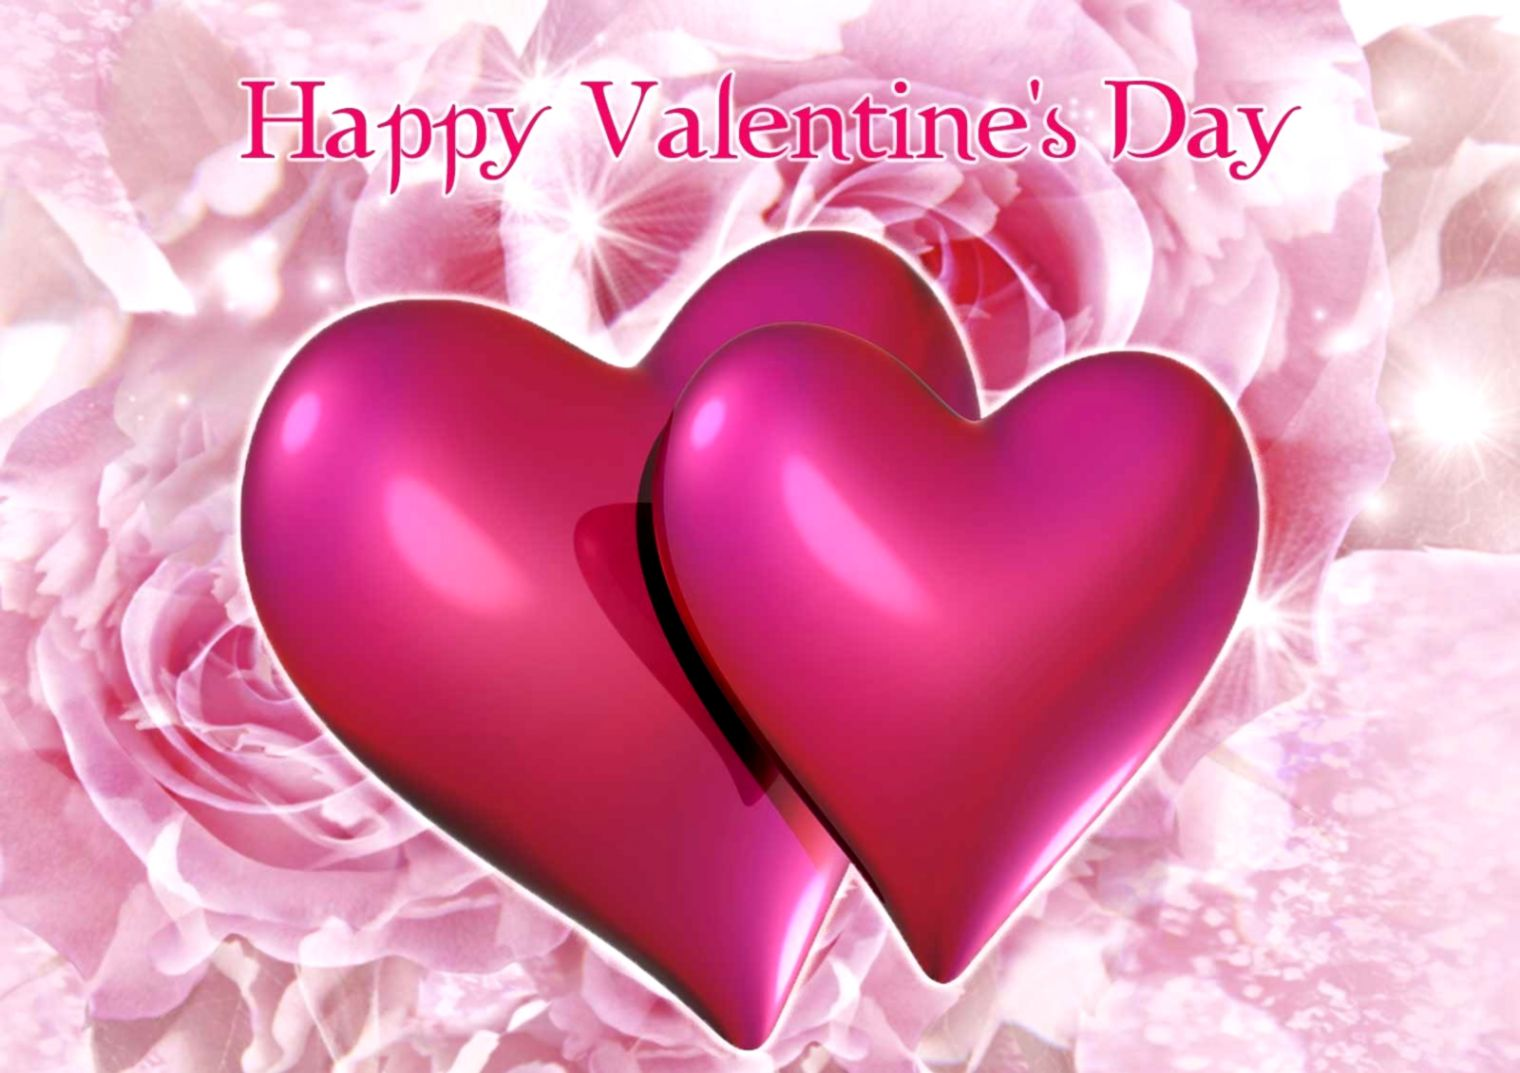 Happy Valentines Day Heart Wallpaper Best Wallpapers Hd Collection